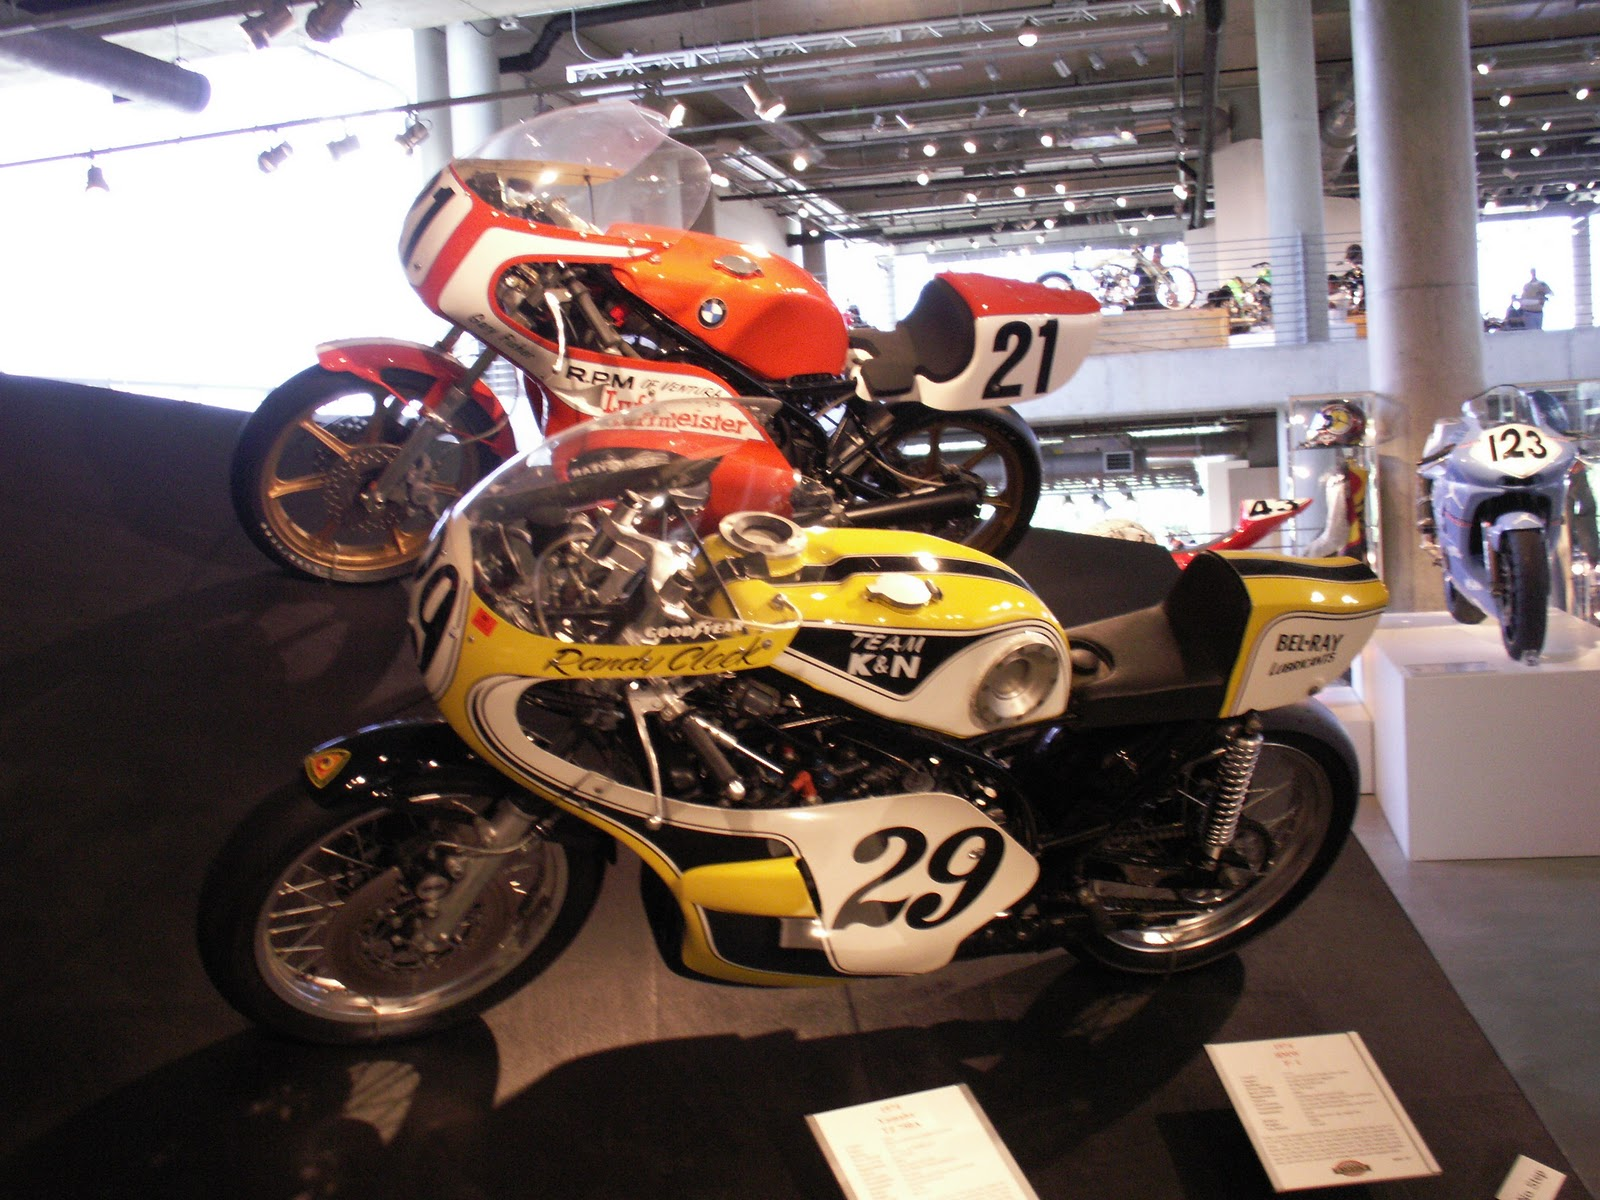 My Classic Motorcycle Barber Motorsports Museum